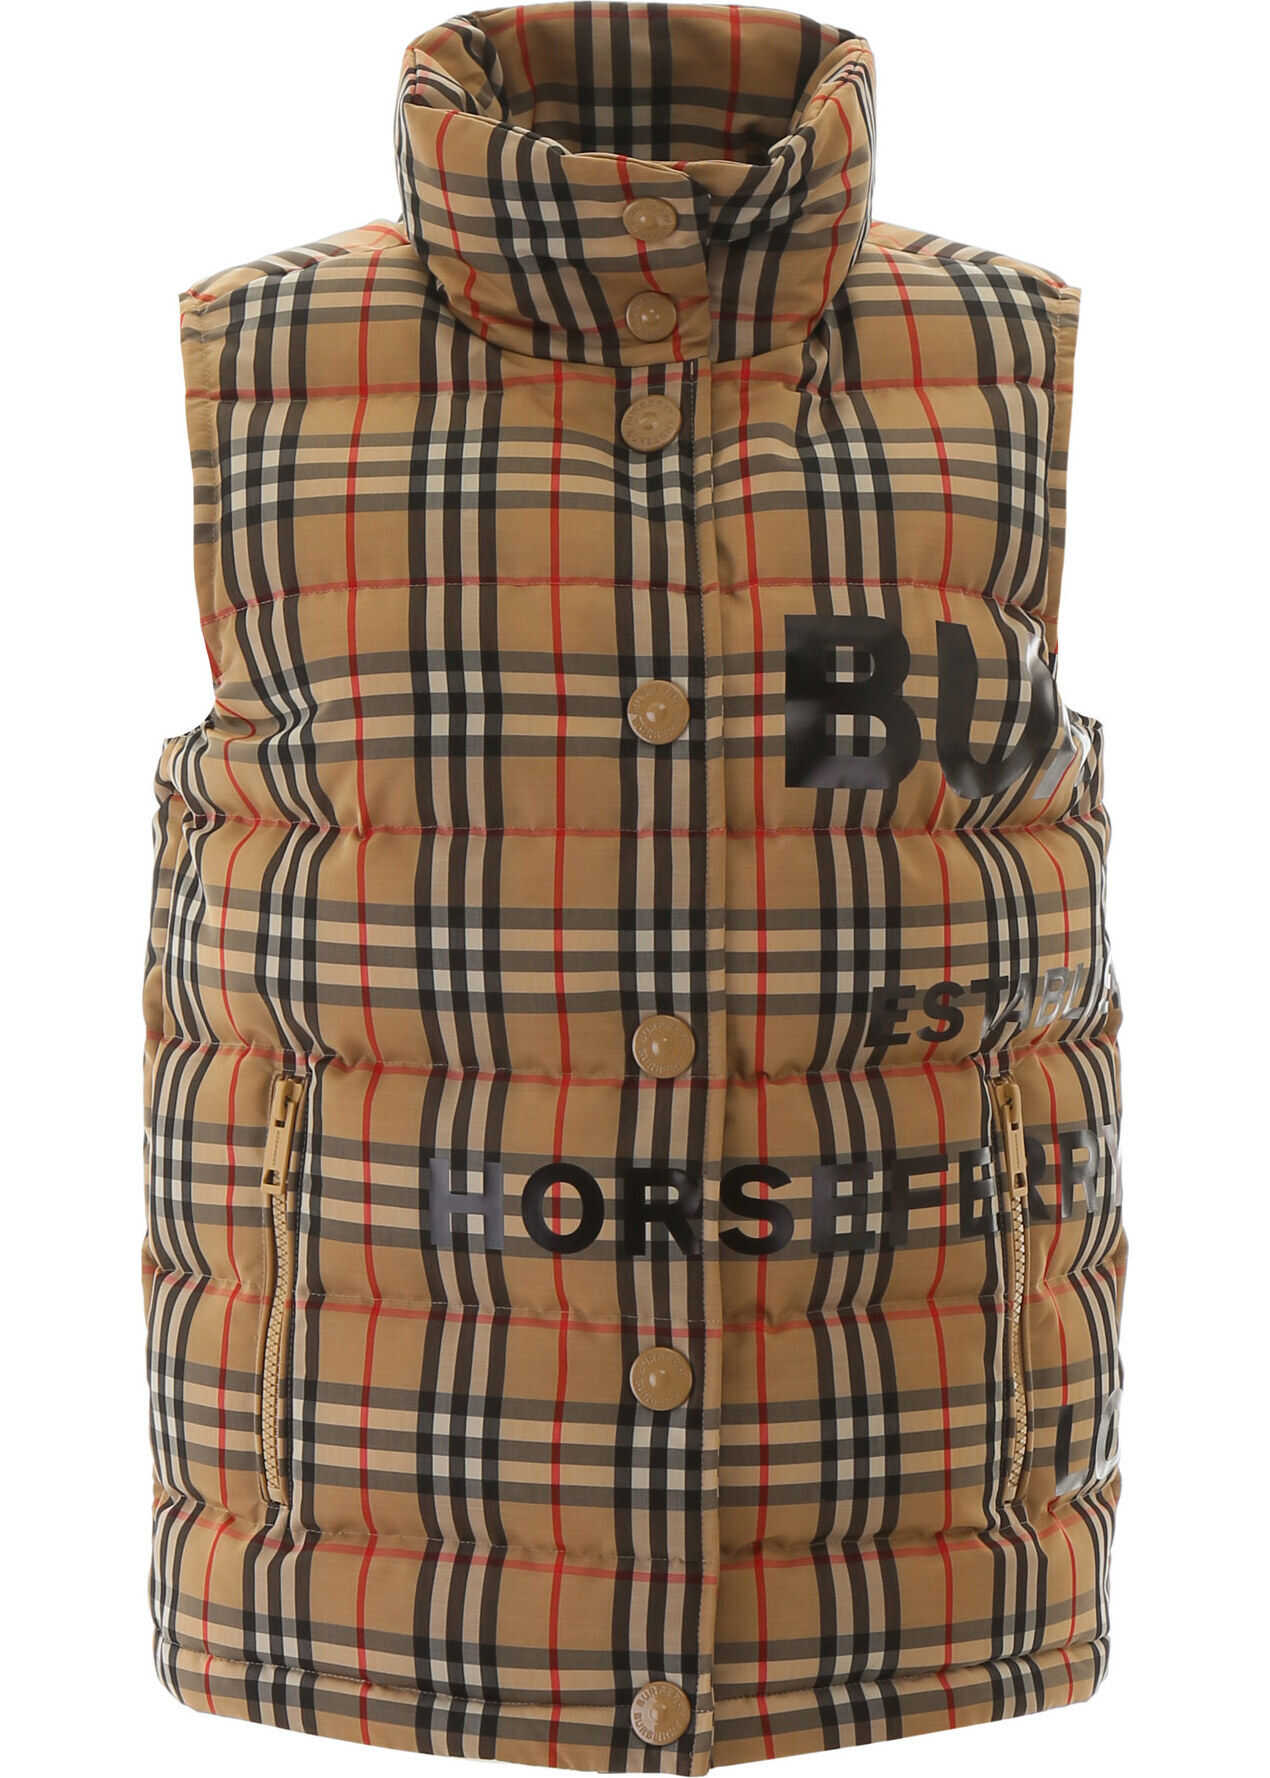 Burberry 8023729 ARCHIVE BEIGE IP CHK